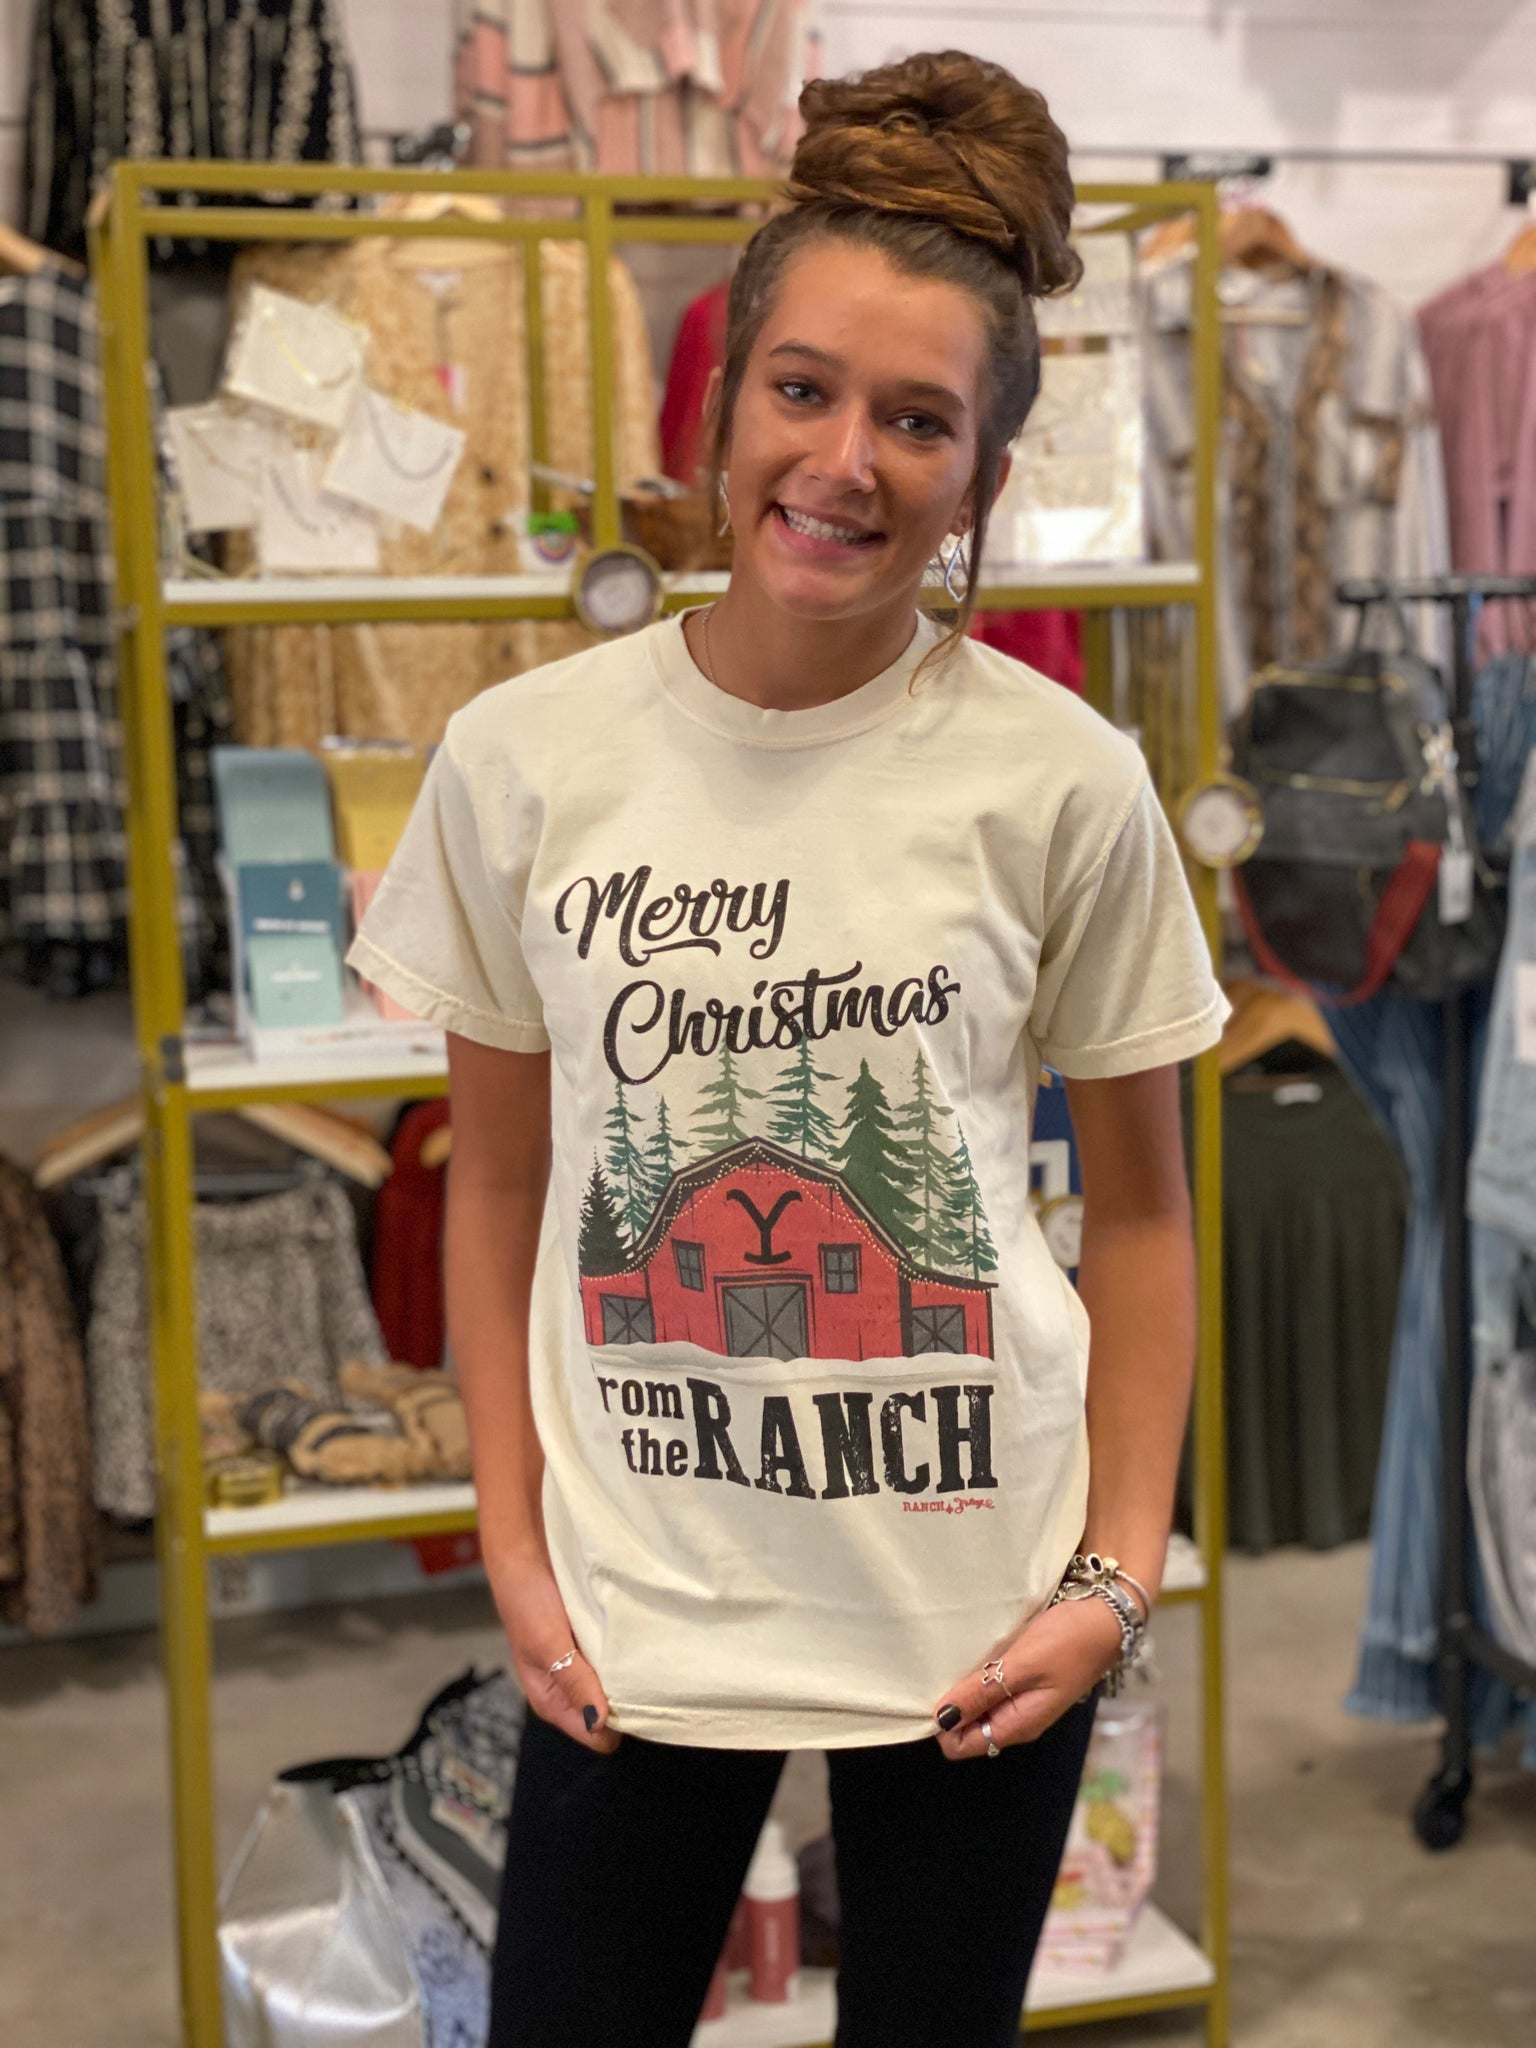 Merry Christmas from the Ranch Tee